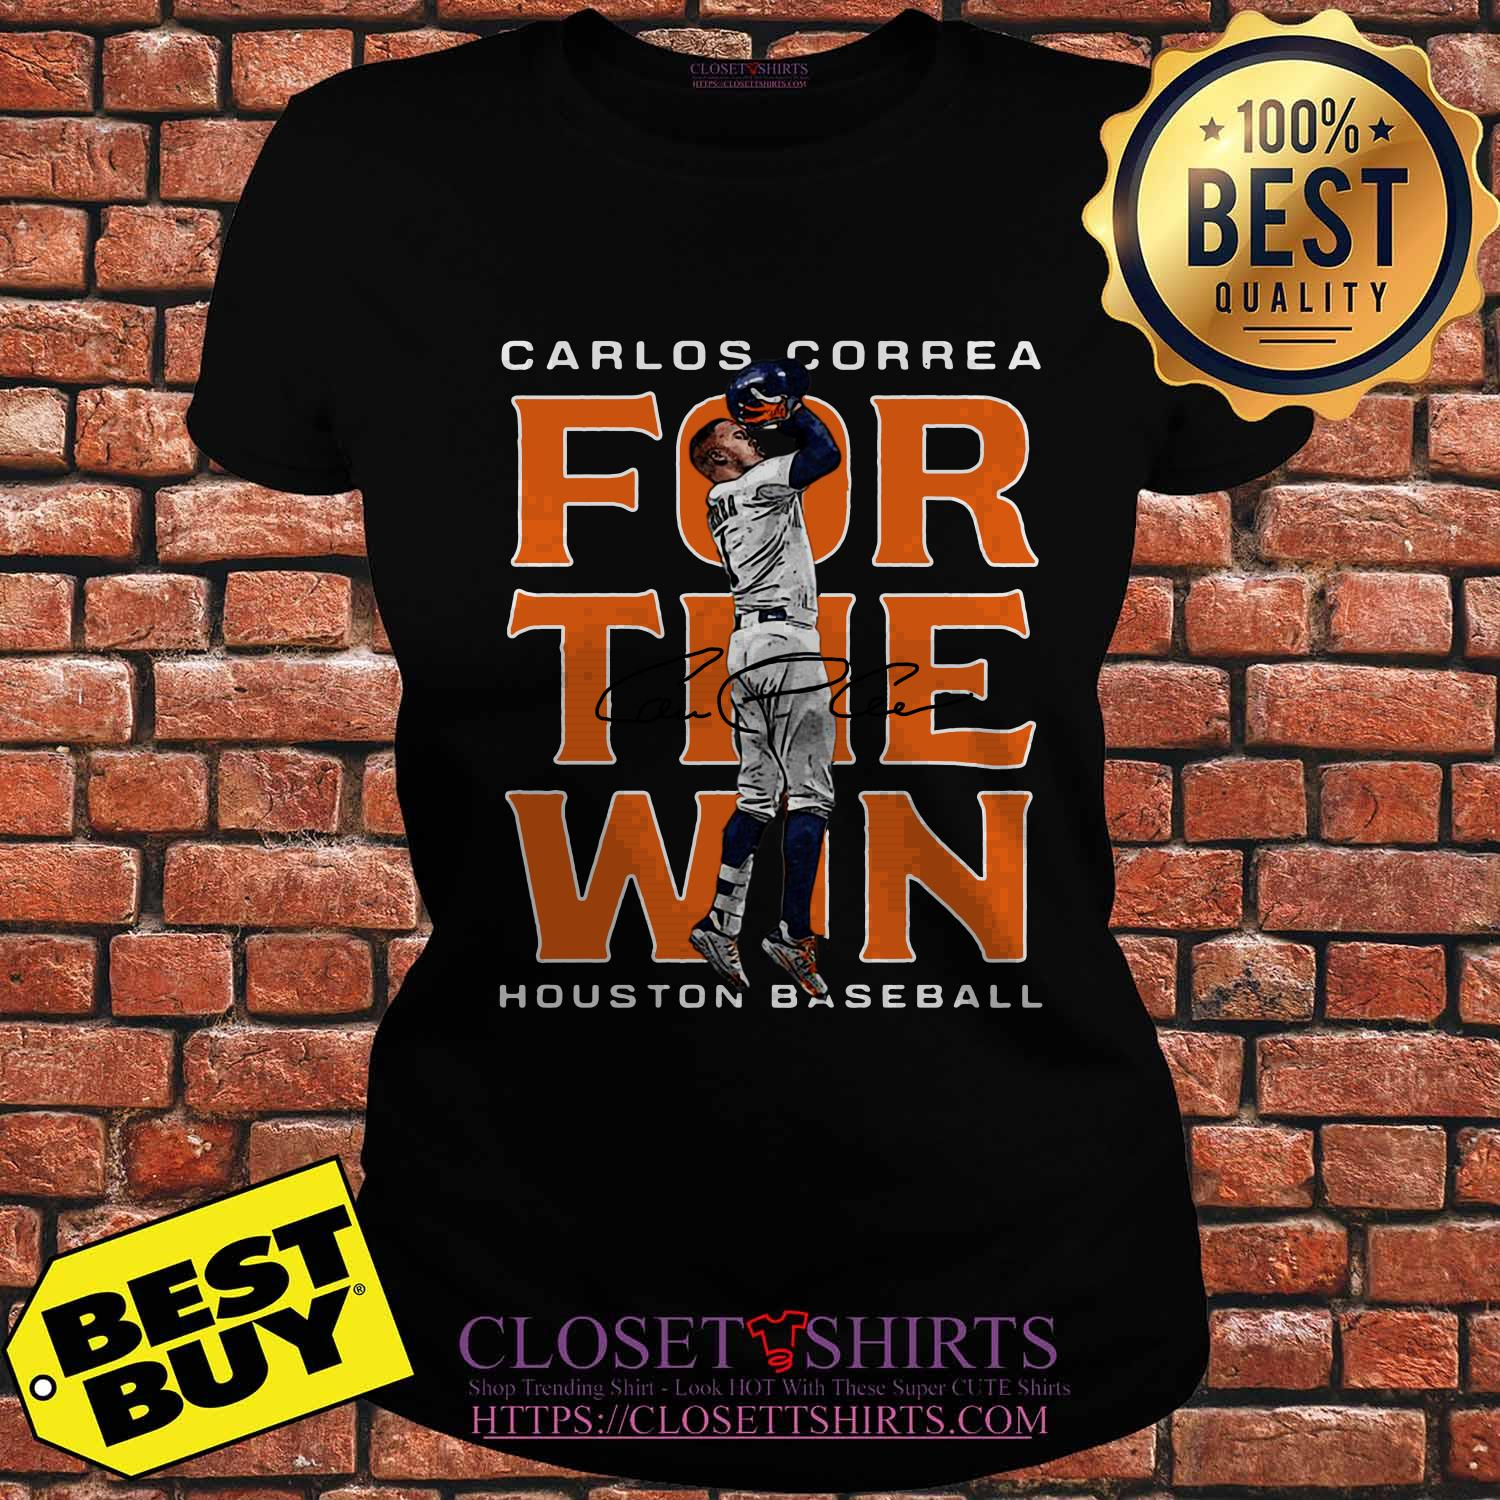 Carlos Correa Houston Astros Baseball Signature ladies tee